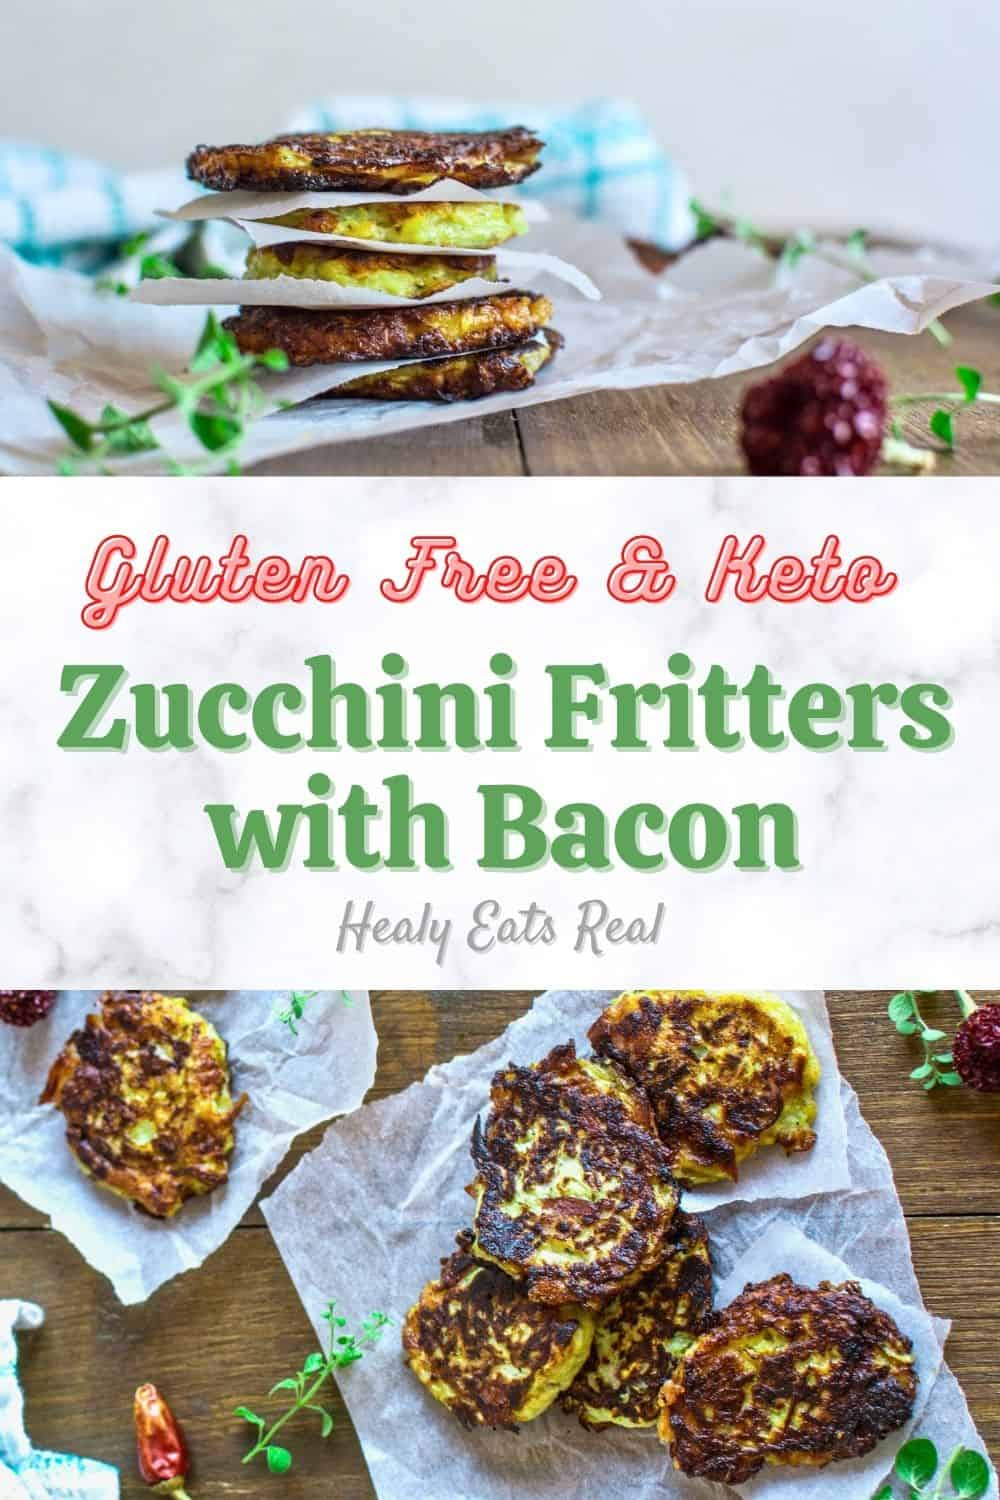 Gluten Free Zucchini Fritters with Bacon (Paleo & Keto)